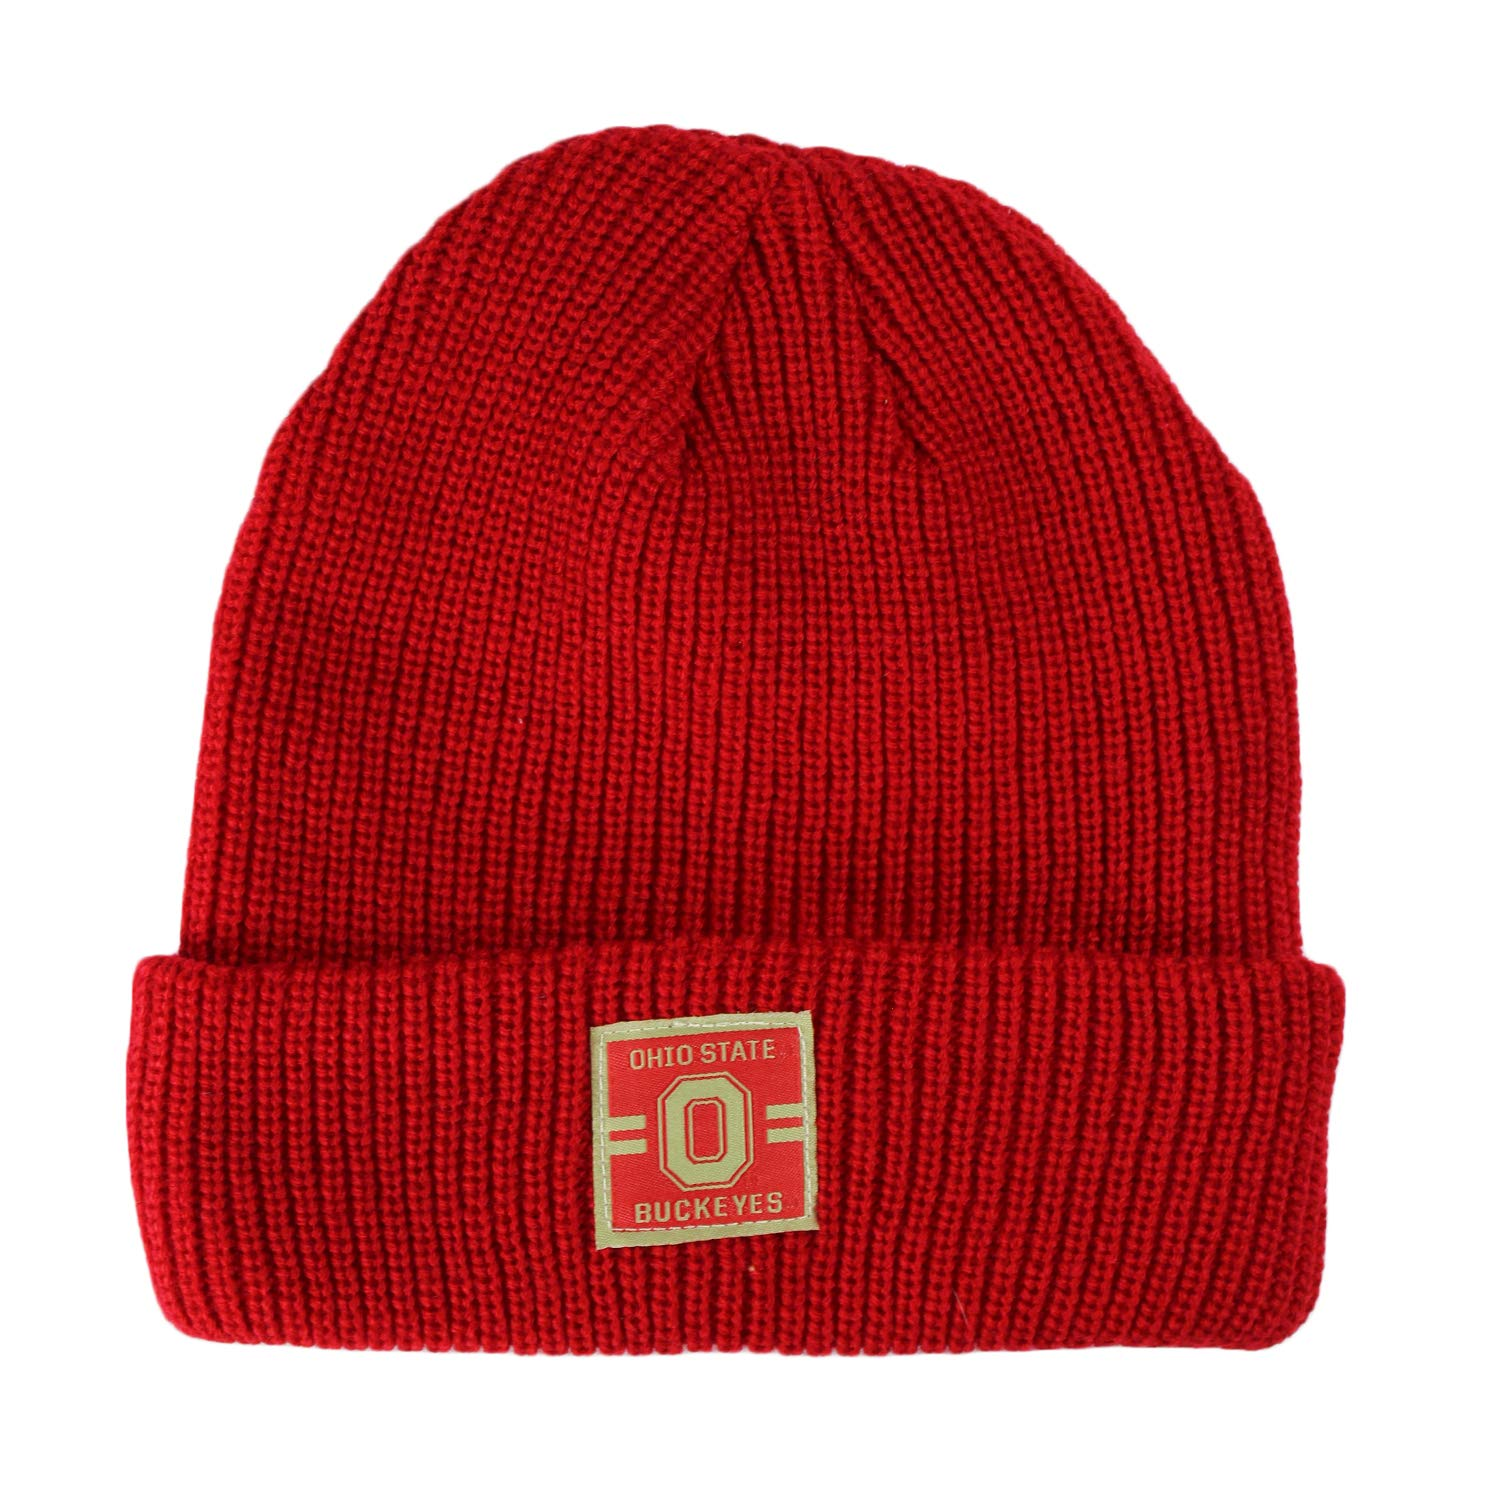 Top of the World Ohio State Buckeyes Official NCAA Cuffed Knit Incline Stocking Stretch Sock Hat Cap Beanie 483979